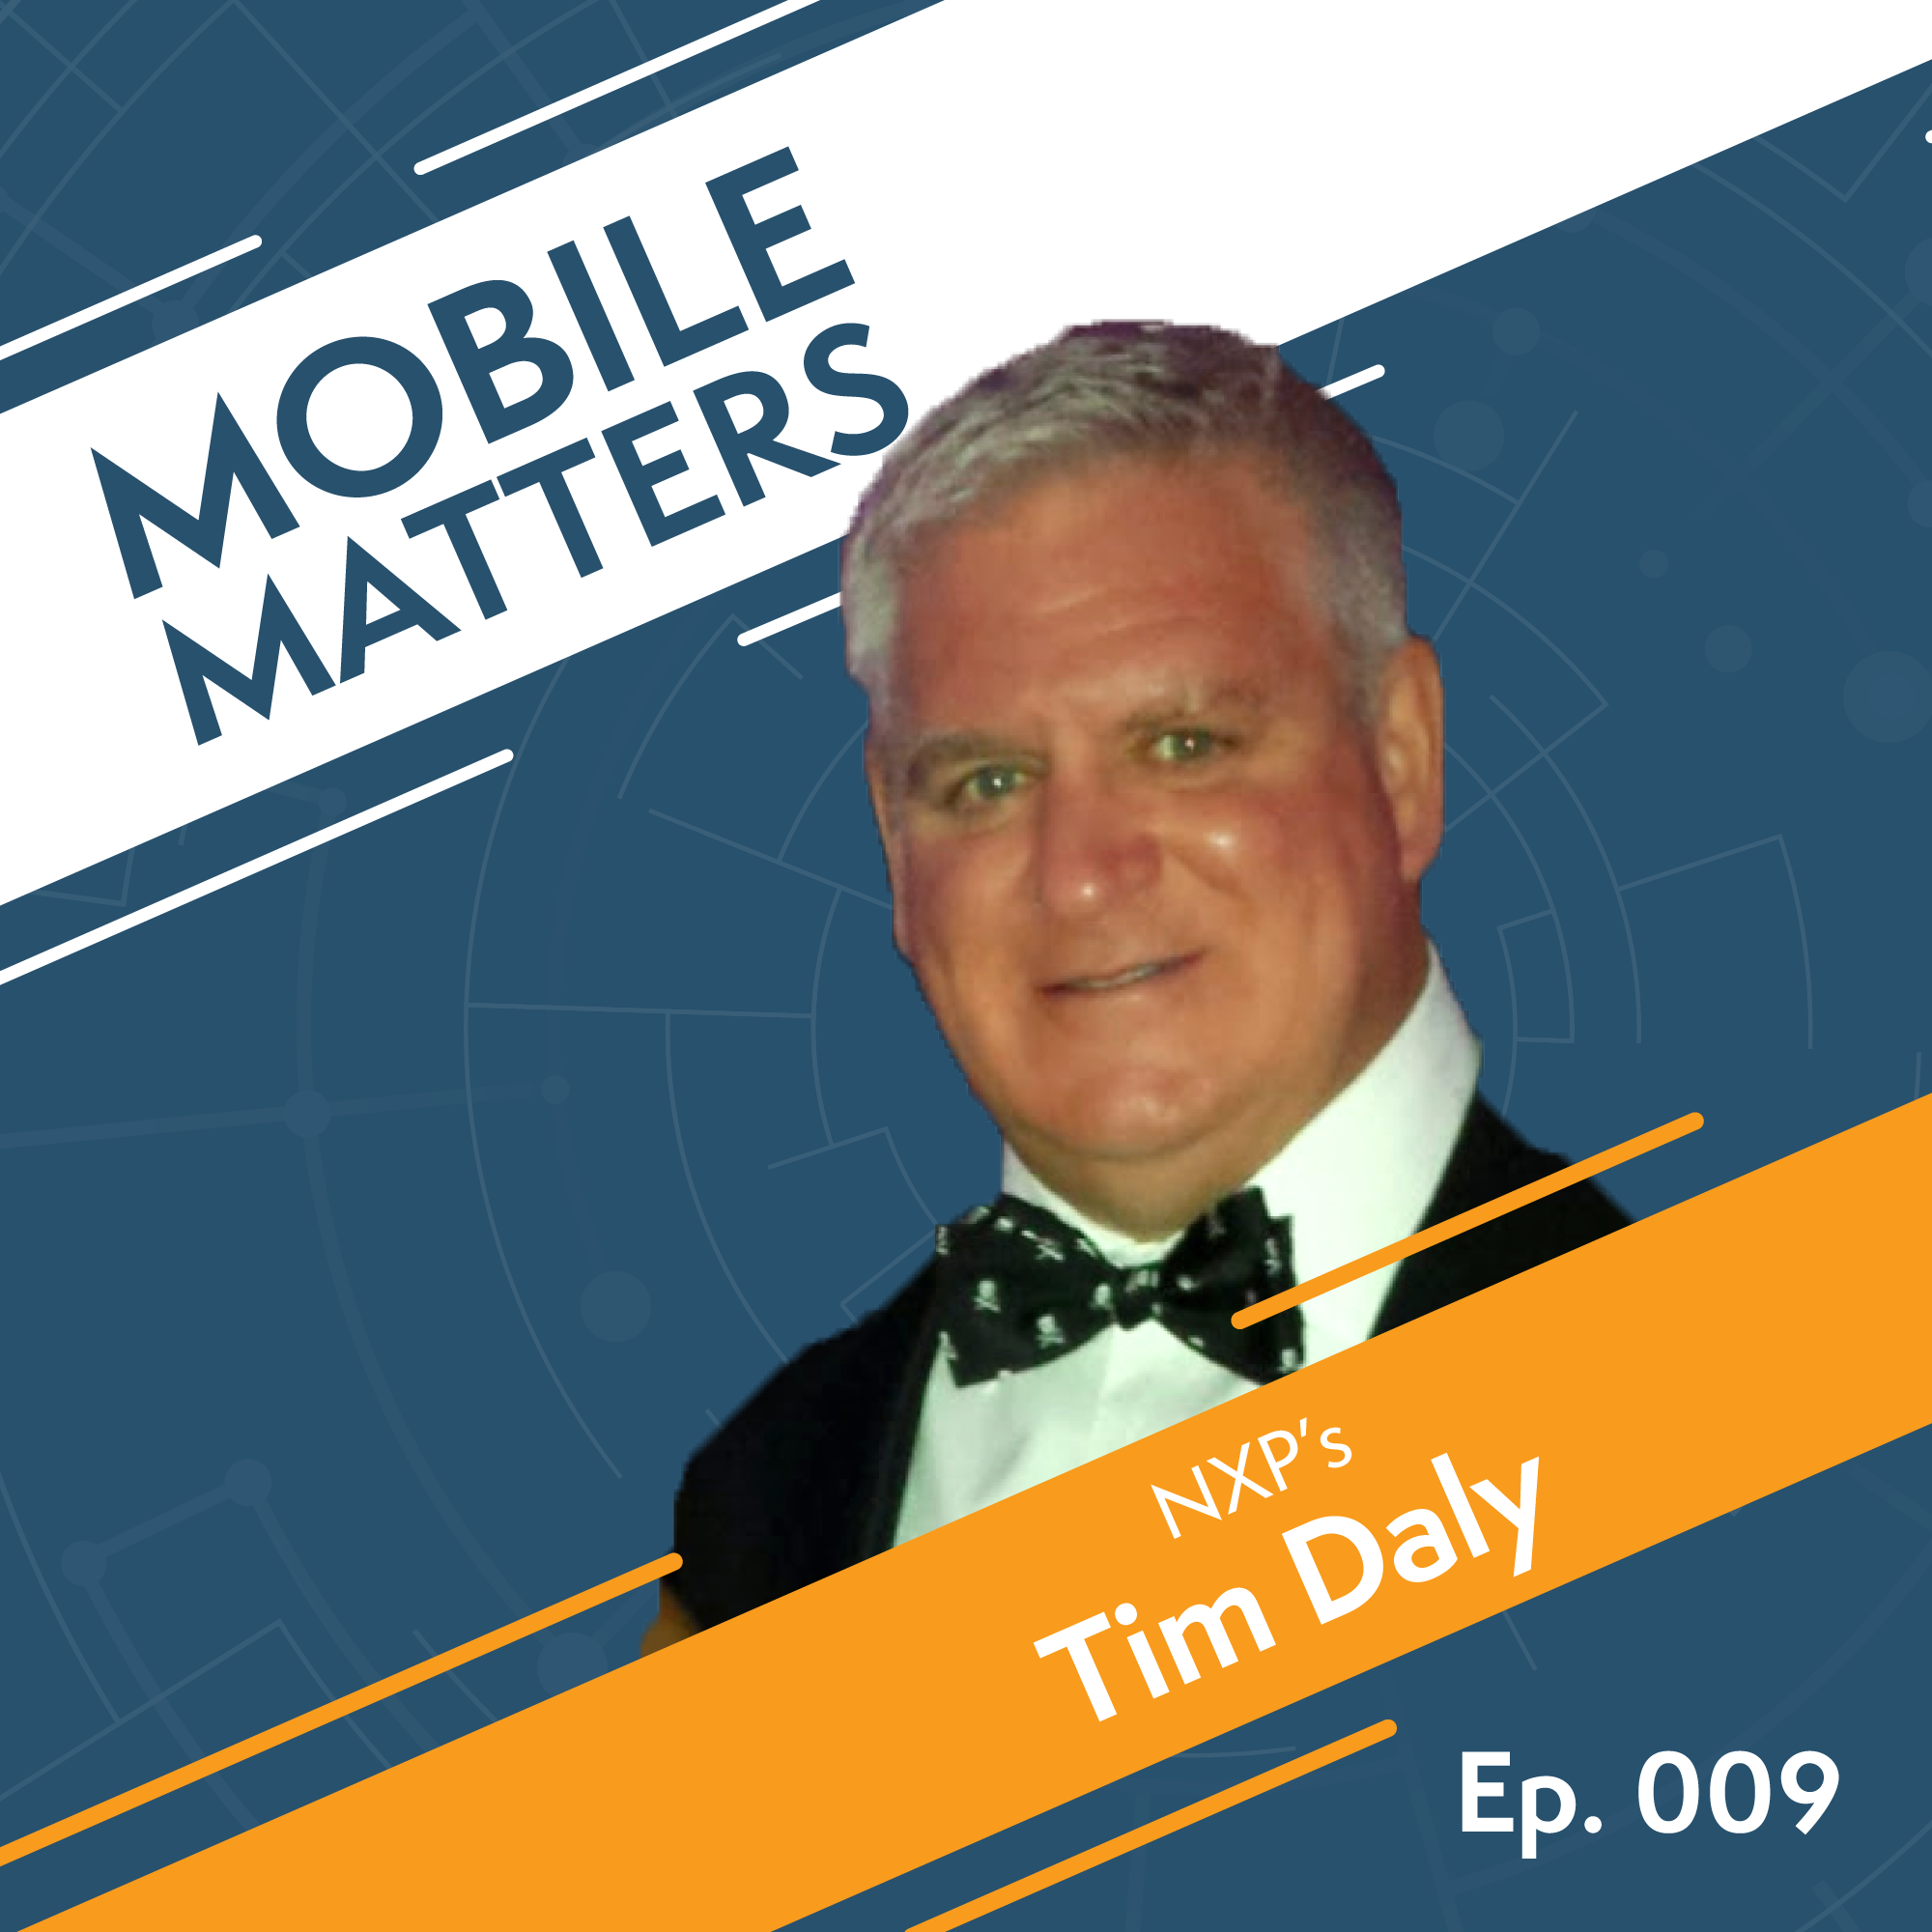 009: NXP   NFC: The Power Behind a Tap of Your Mobile Device